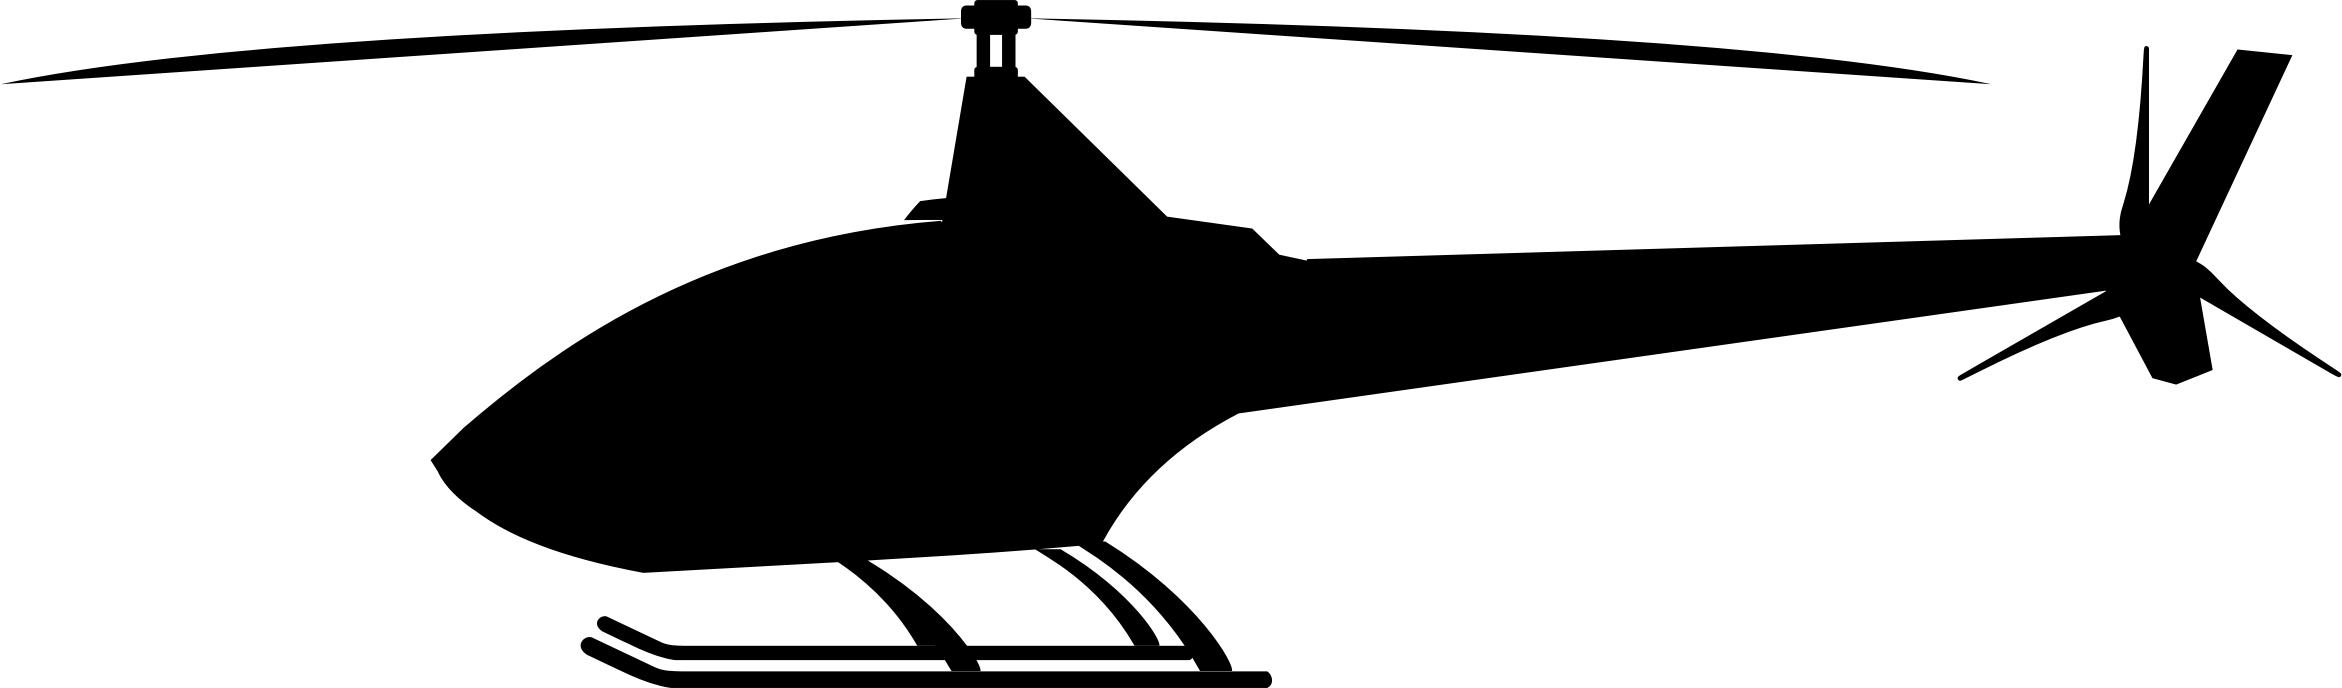 2342x688 Free Helicopter Icons Png, Hel Copter Images